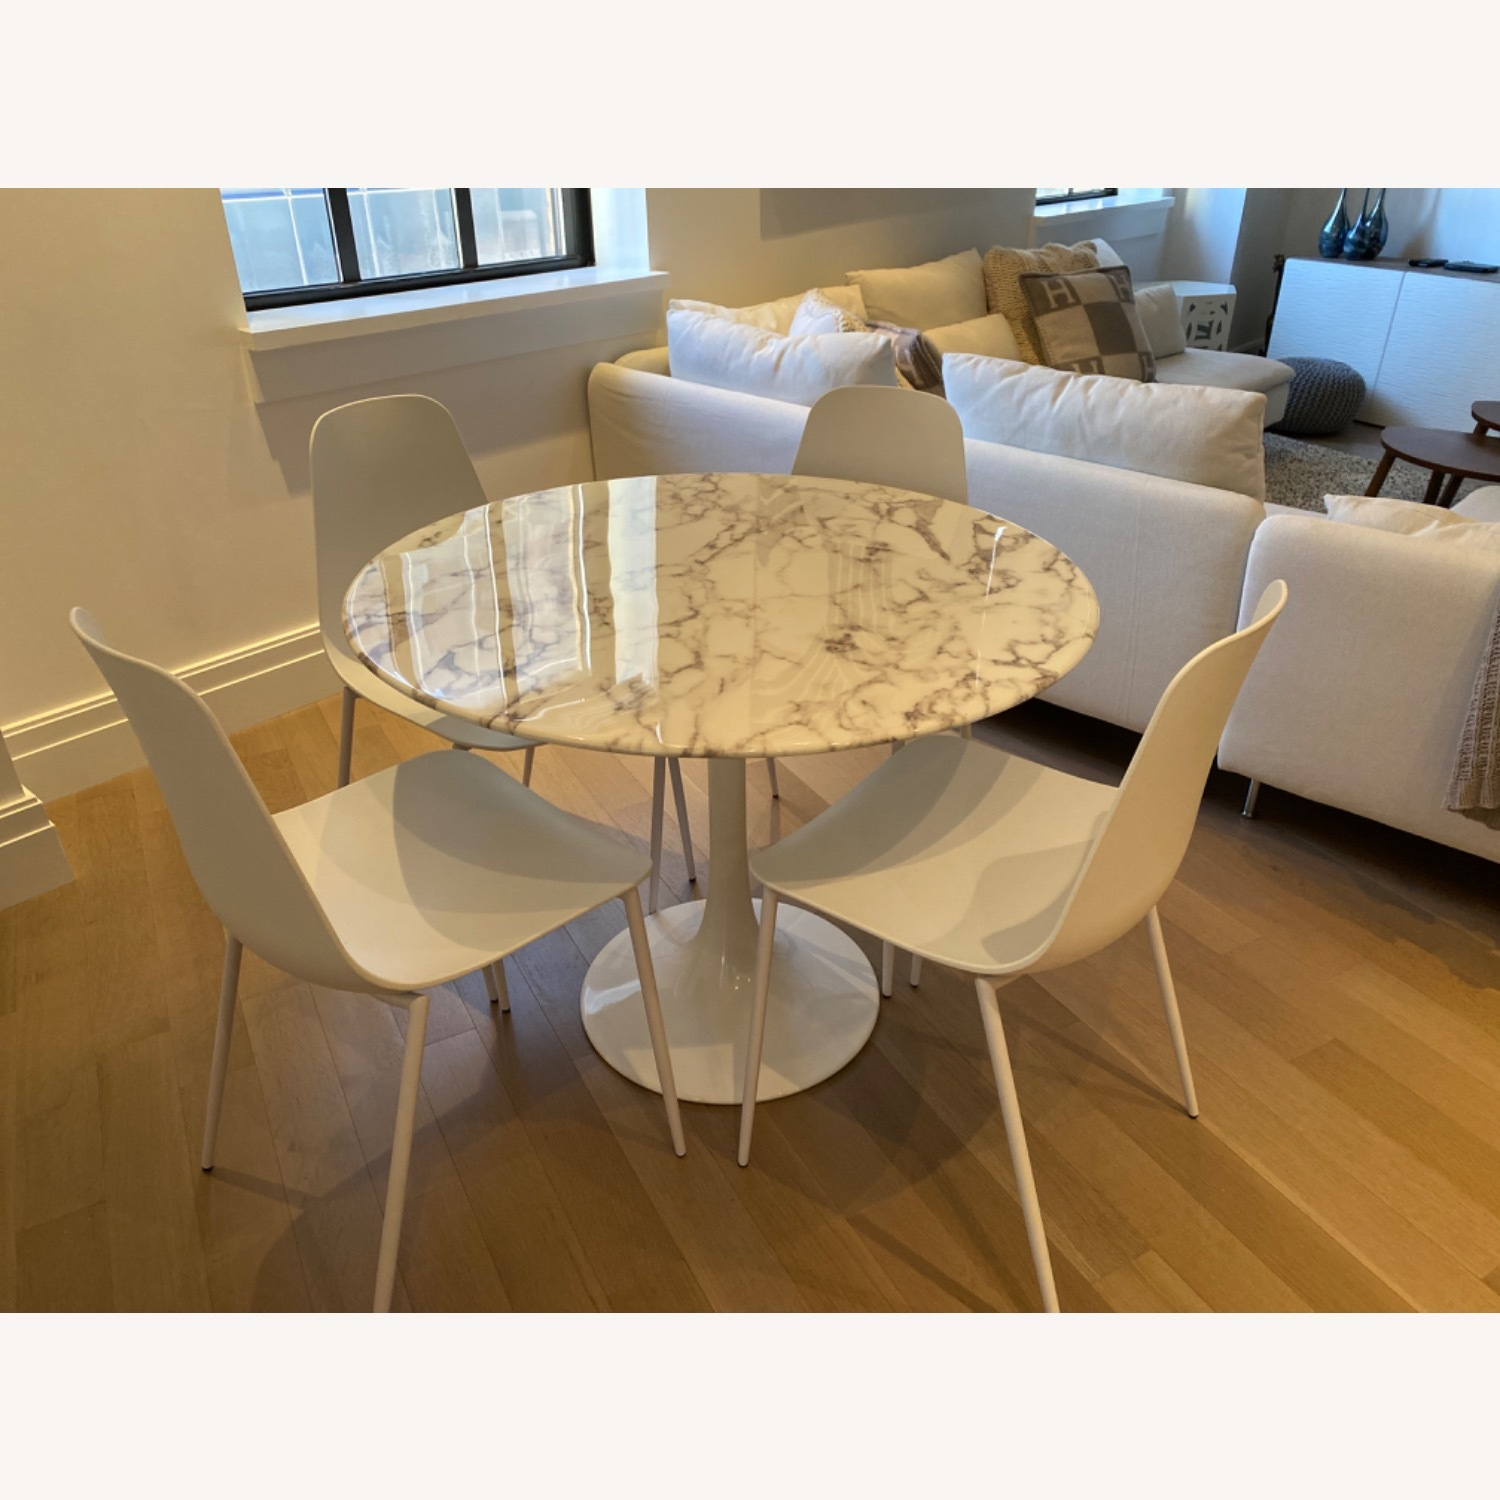 Round Marble Tulip Table - image-2